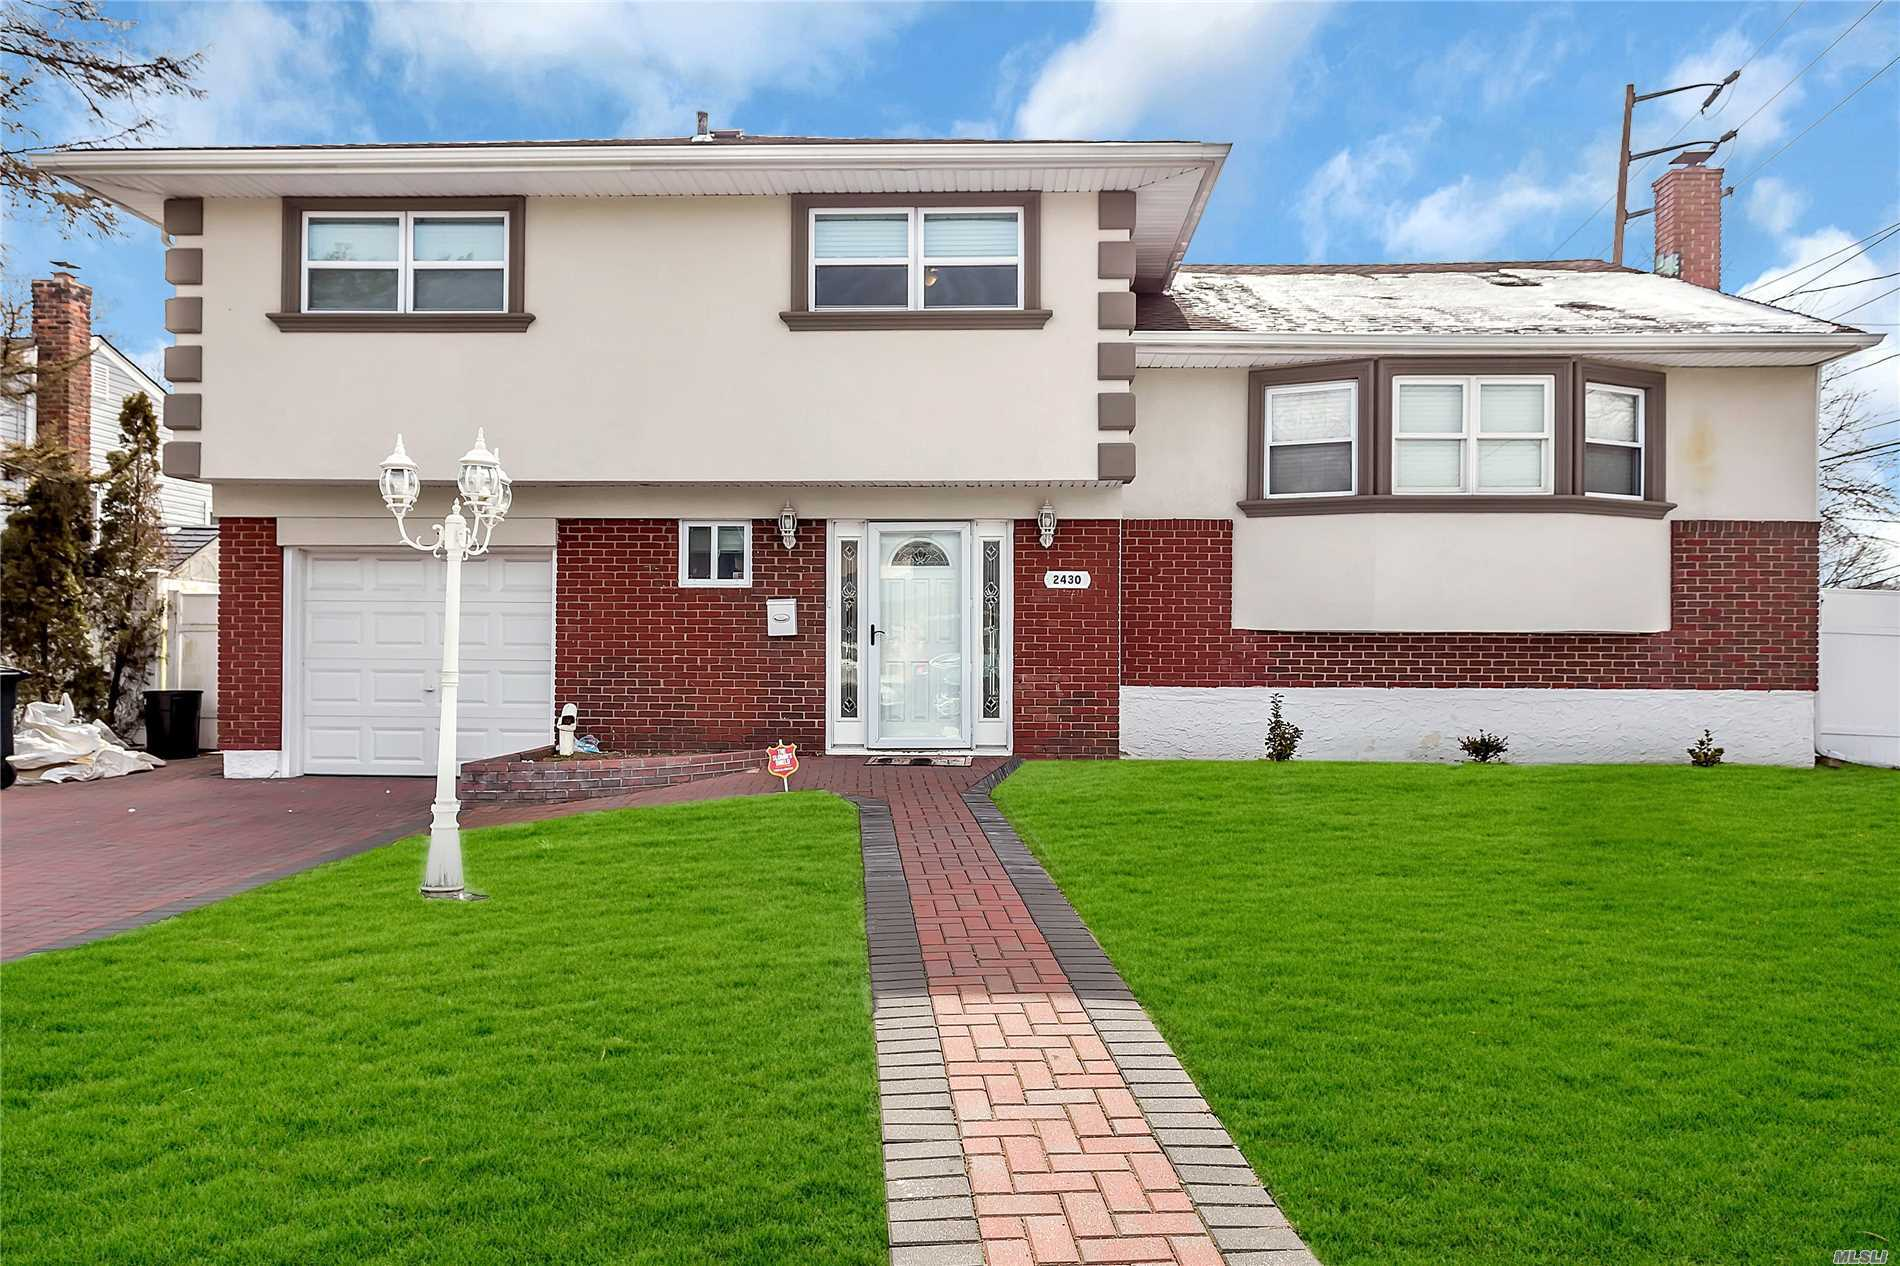 2430 Cliff Ln - N. Bellmore, New York